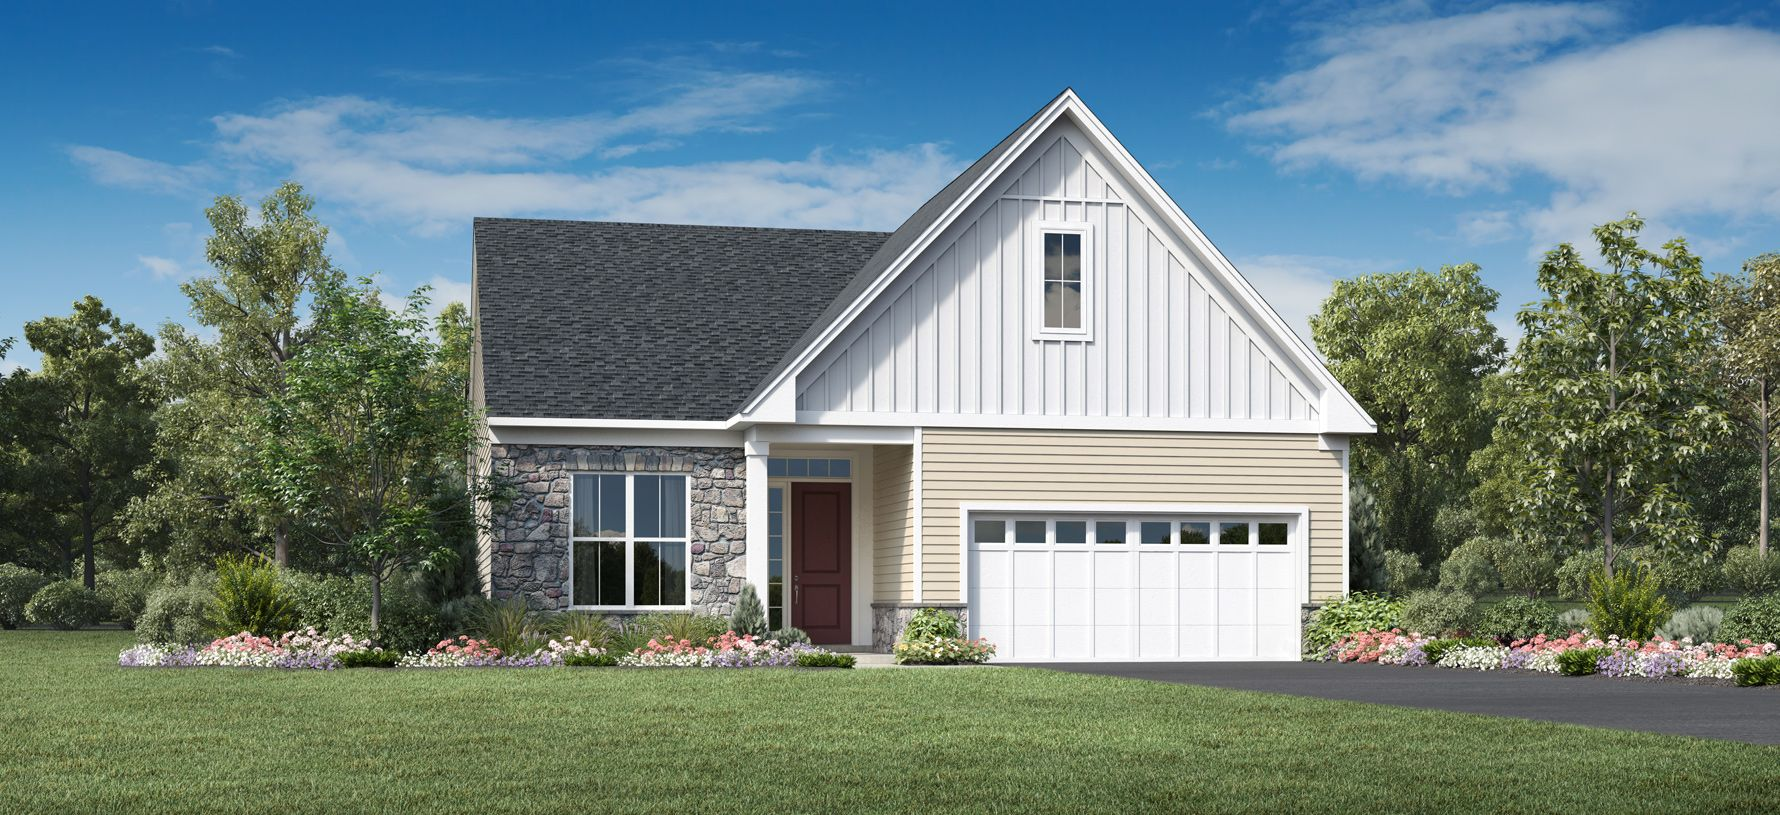 Exterior featured in the Farmingham By Toll Brothers in Monmouth County, NJ